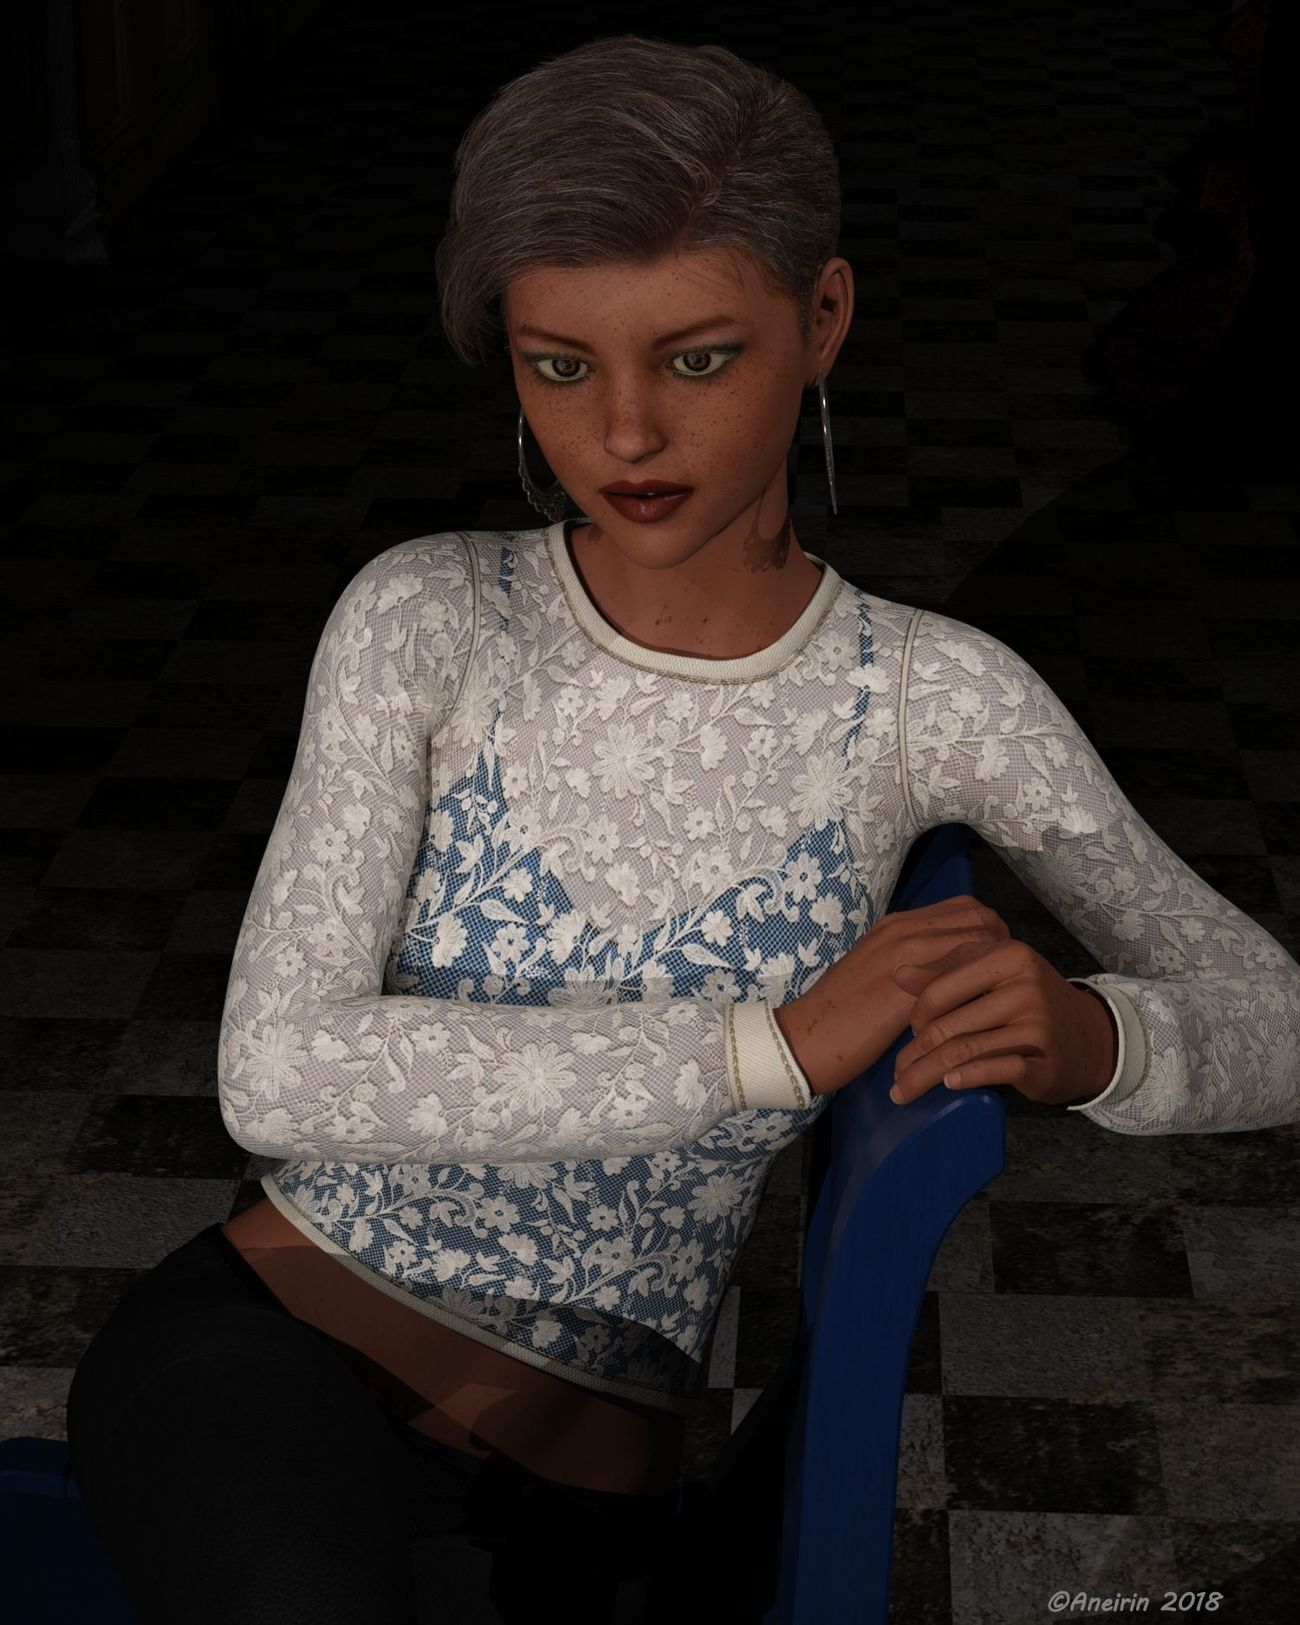 Young Girl sitting on a Chair